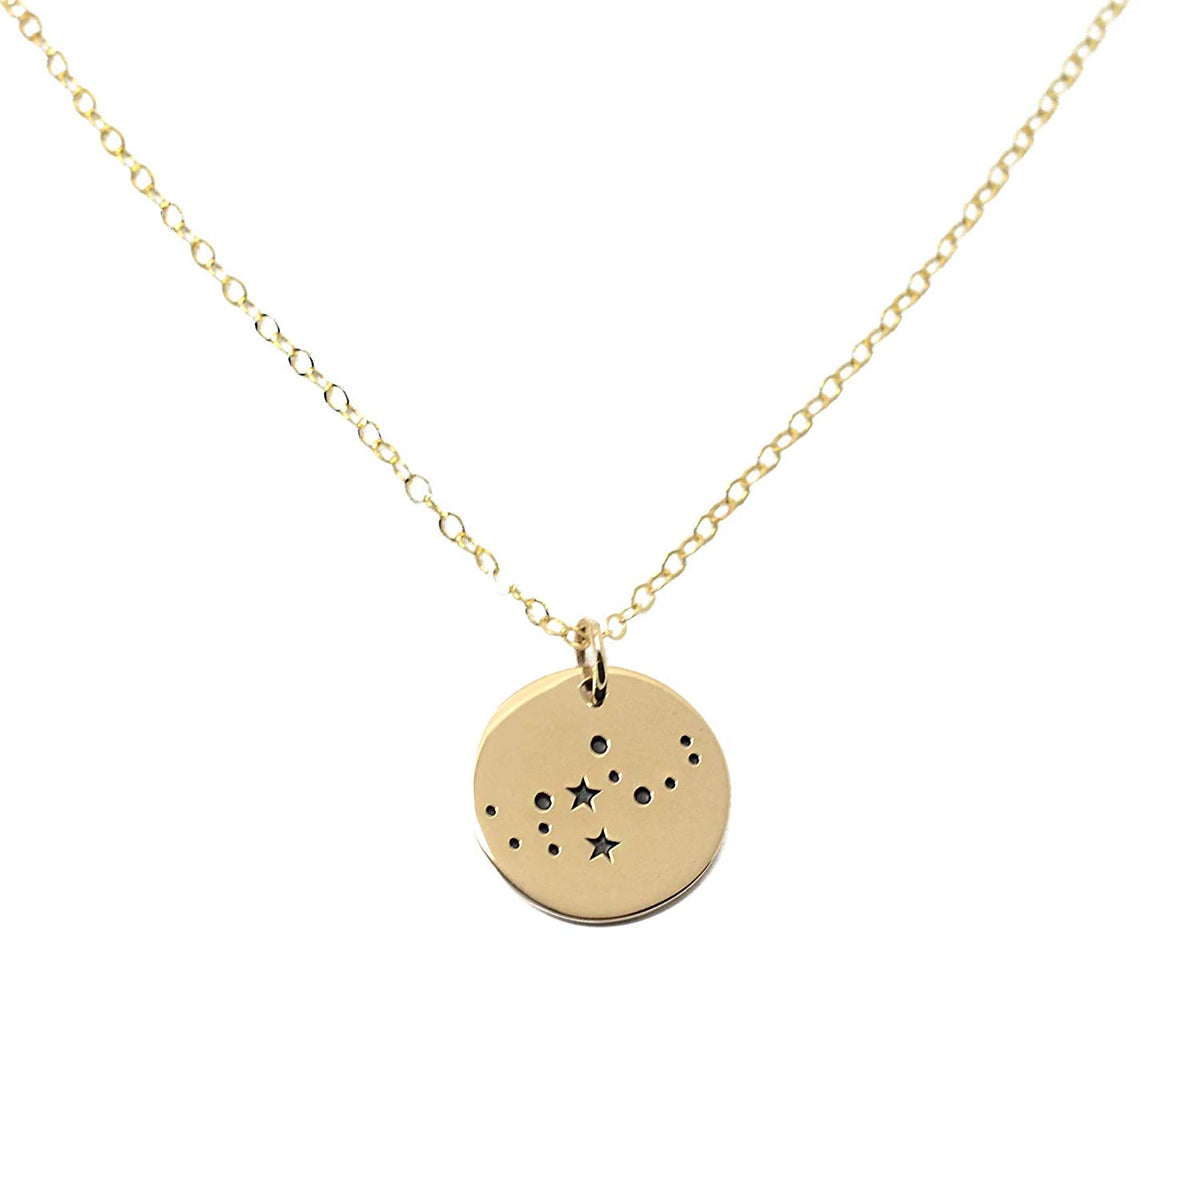 Virgo Zodiac Sign 14K Gold Filled Constellation Necklace - Love It Personalized